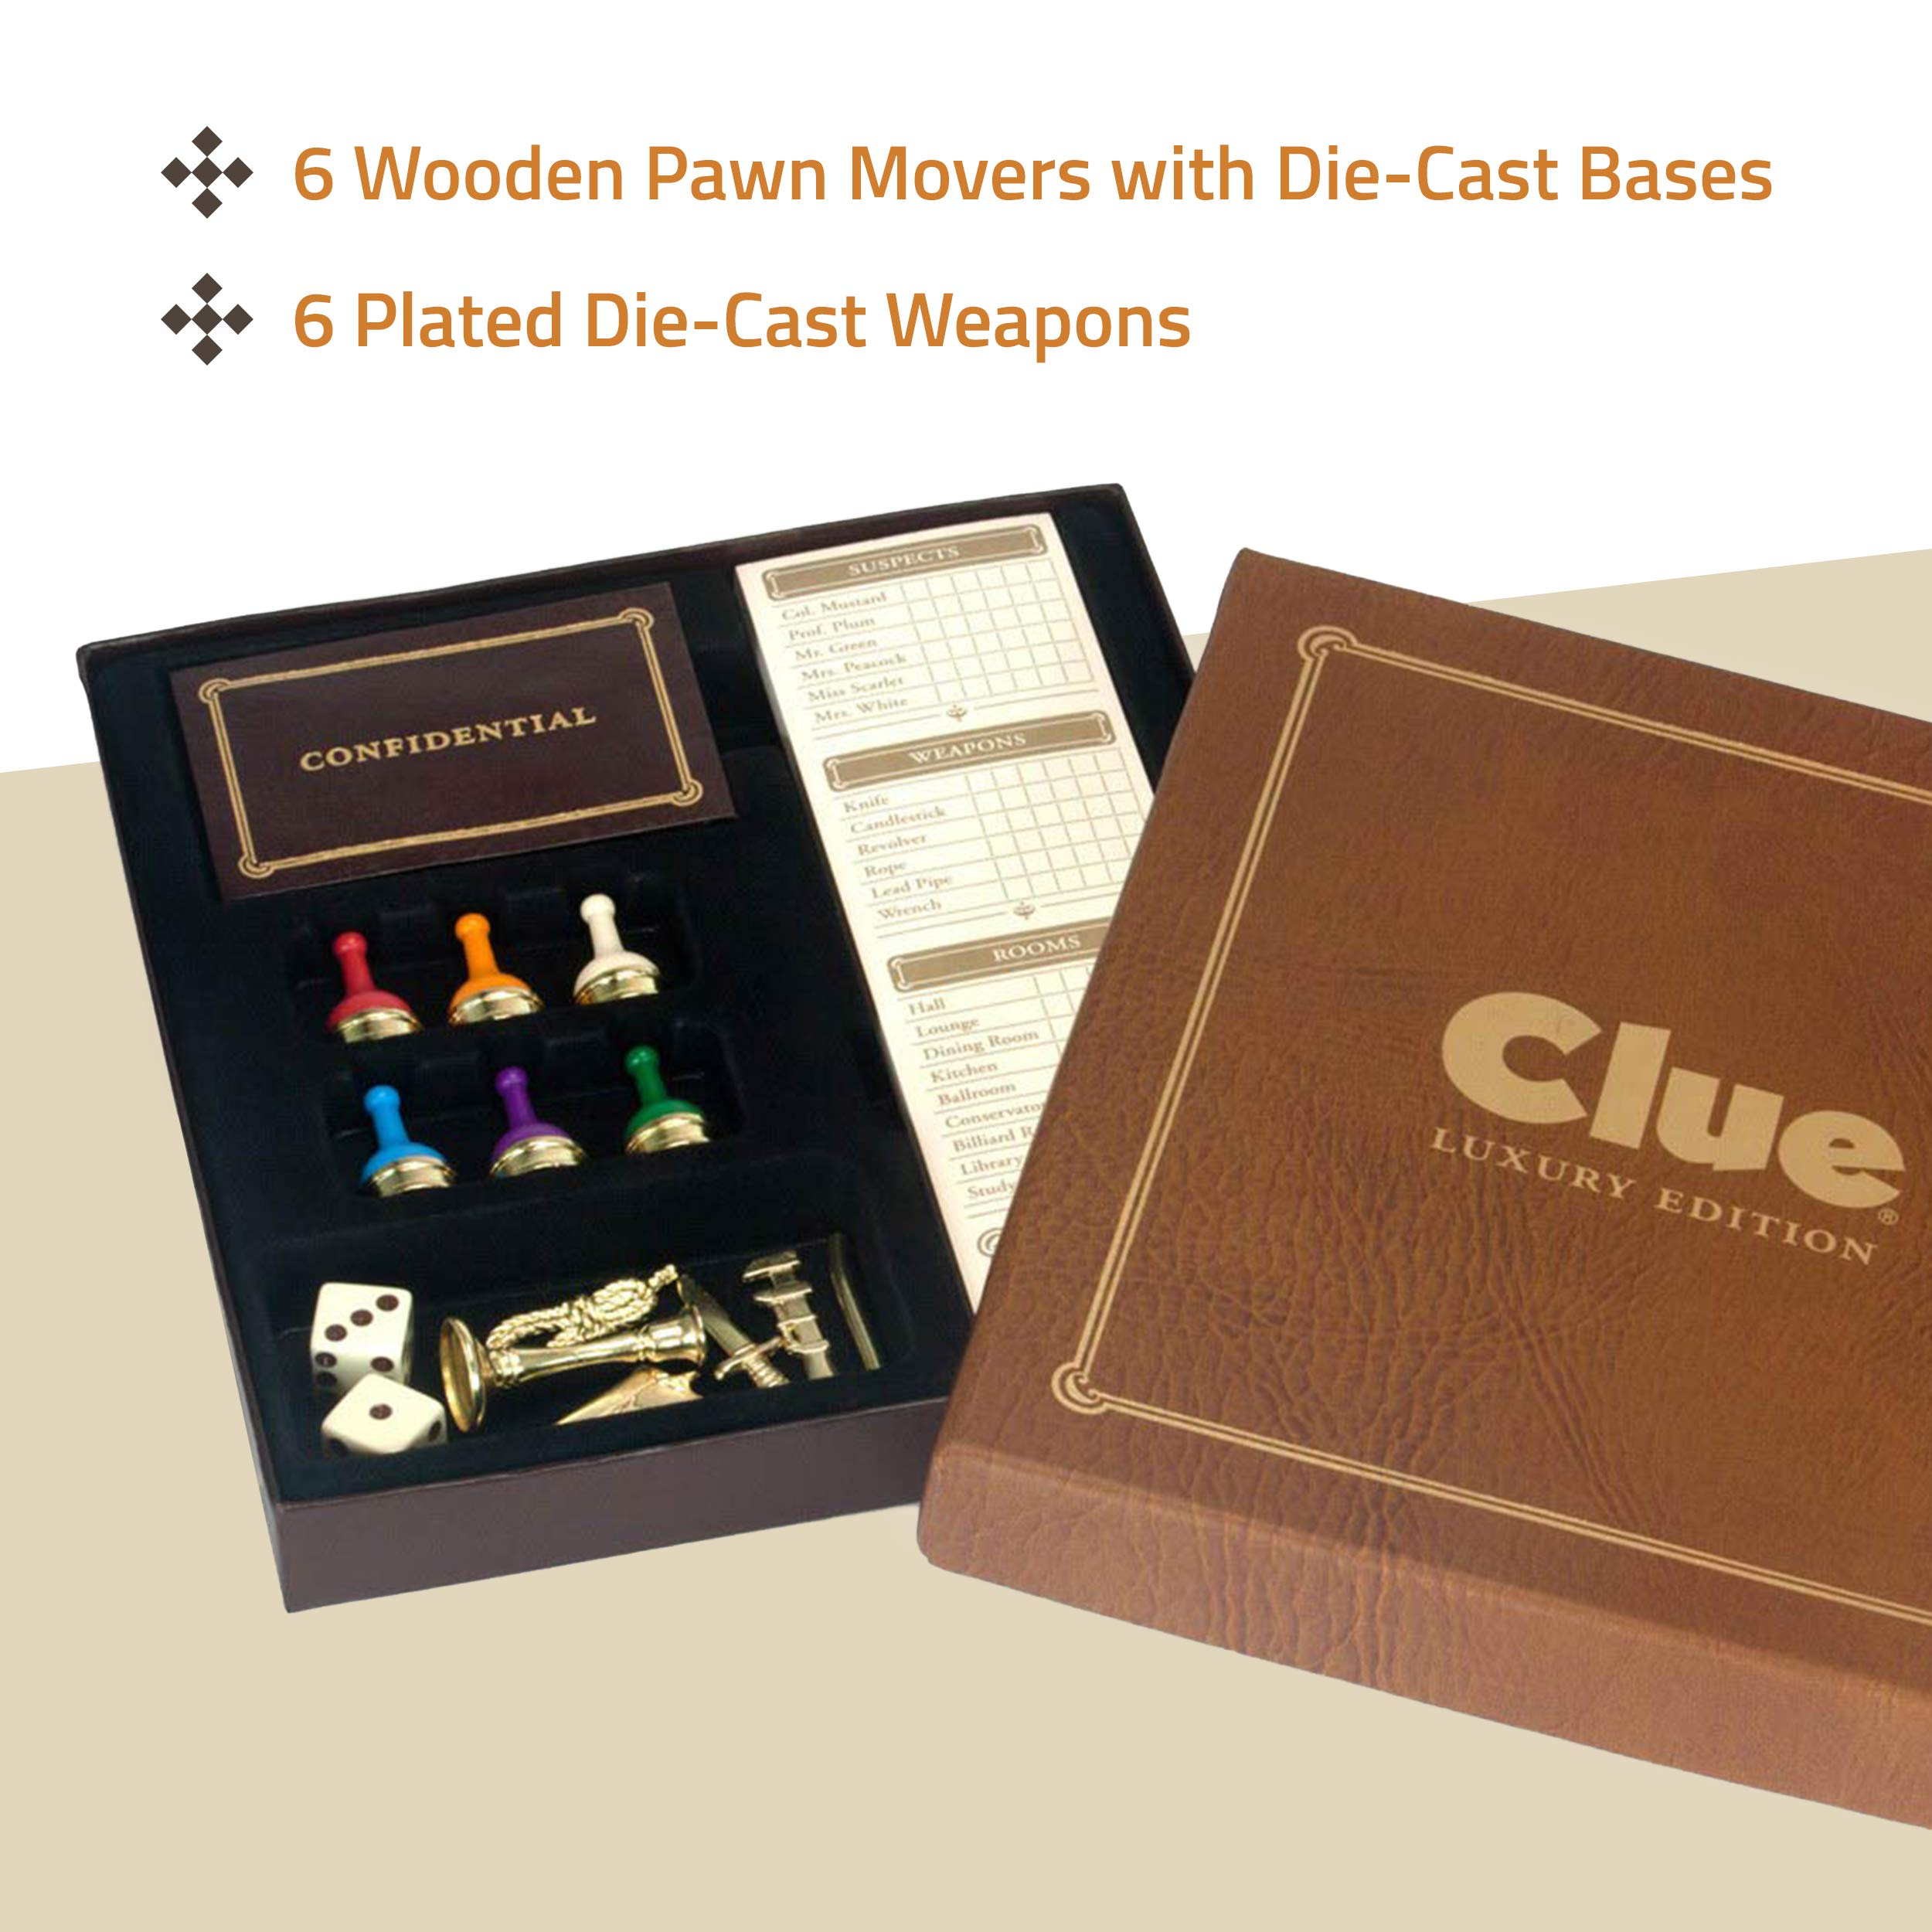 Clue Luxury Edition Board Game by Winning Solutions by Winning Solutions: Amazon.es: Juguetes y juegos